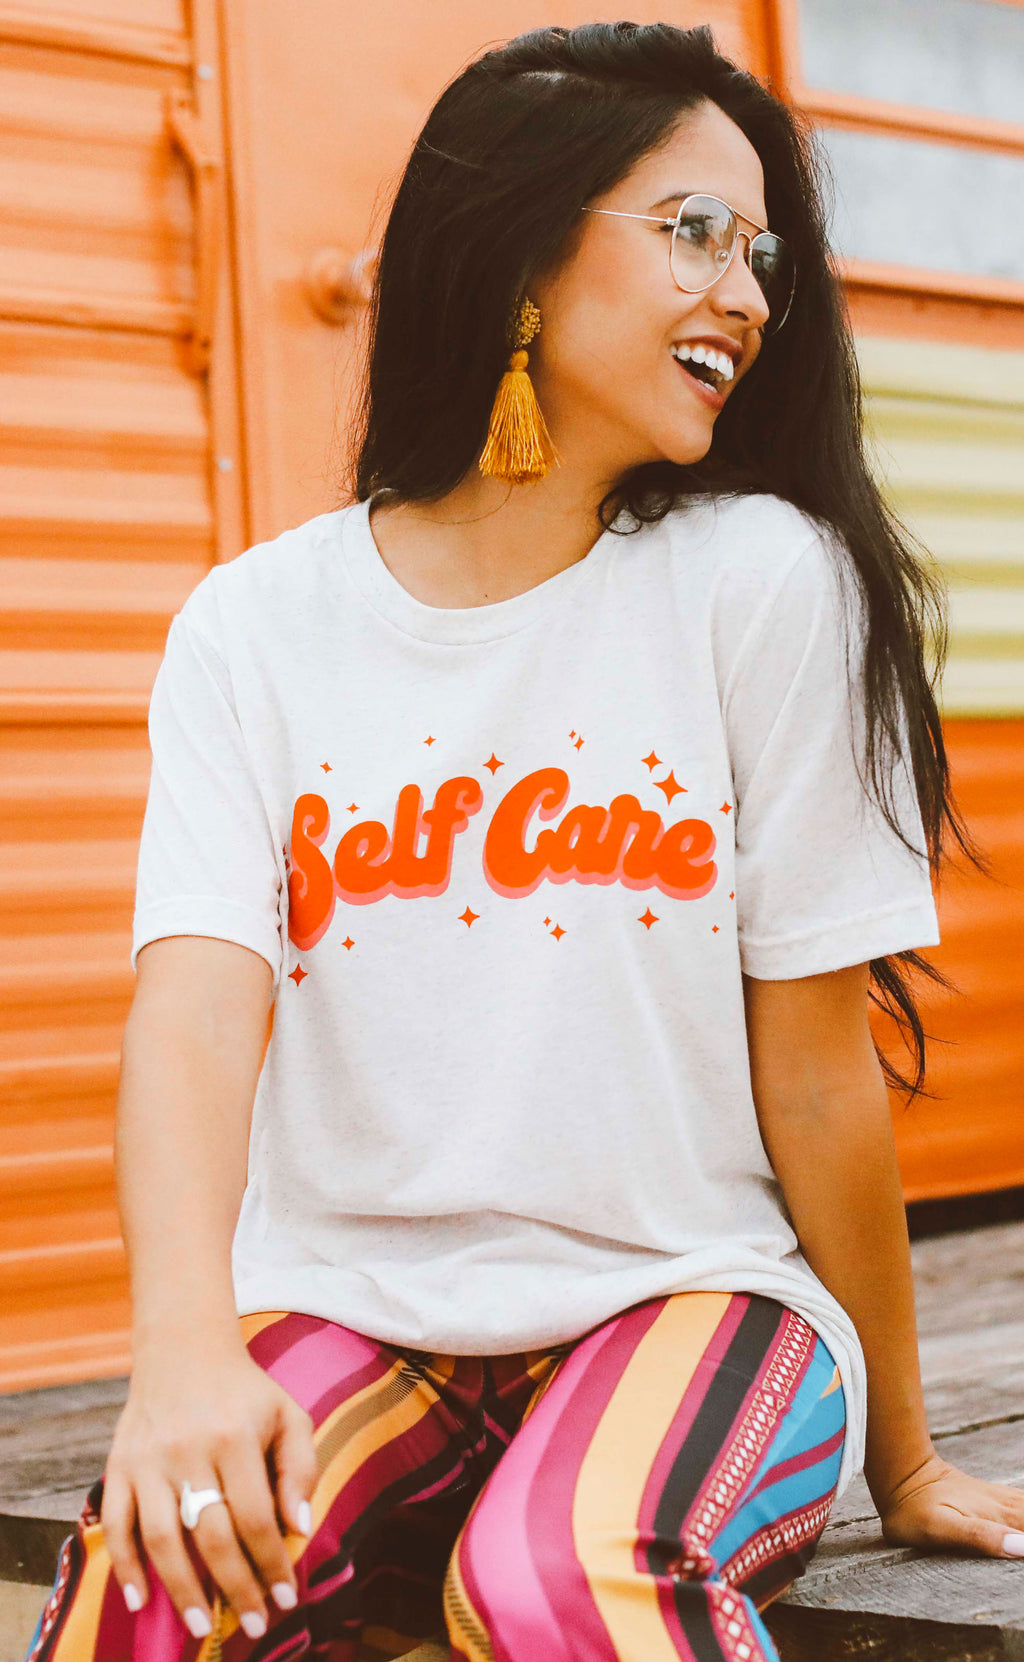 friday + saturday: self care t shirt